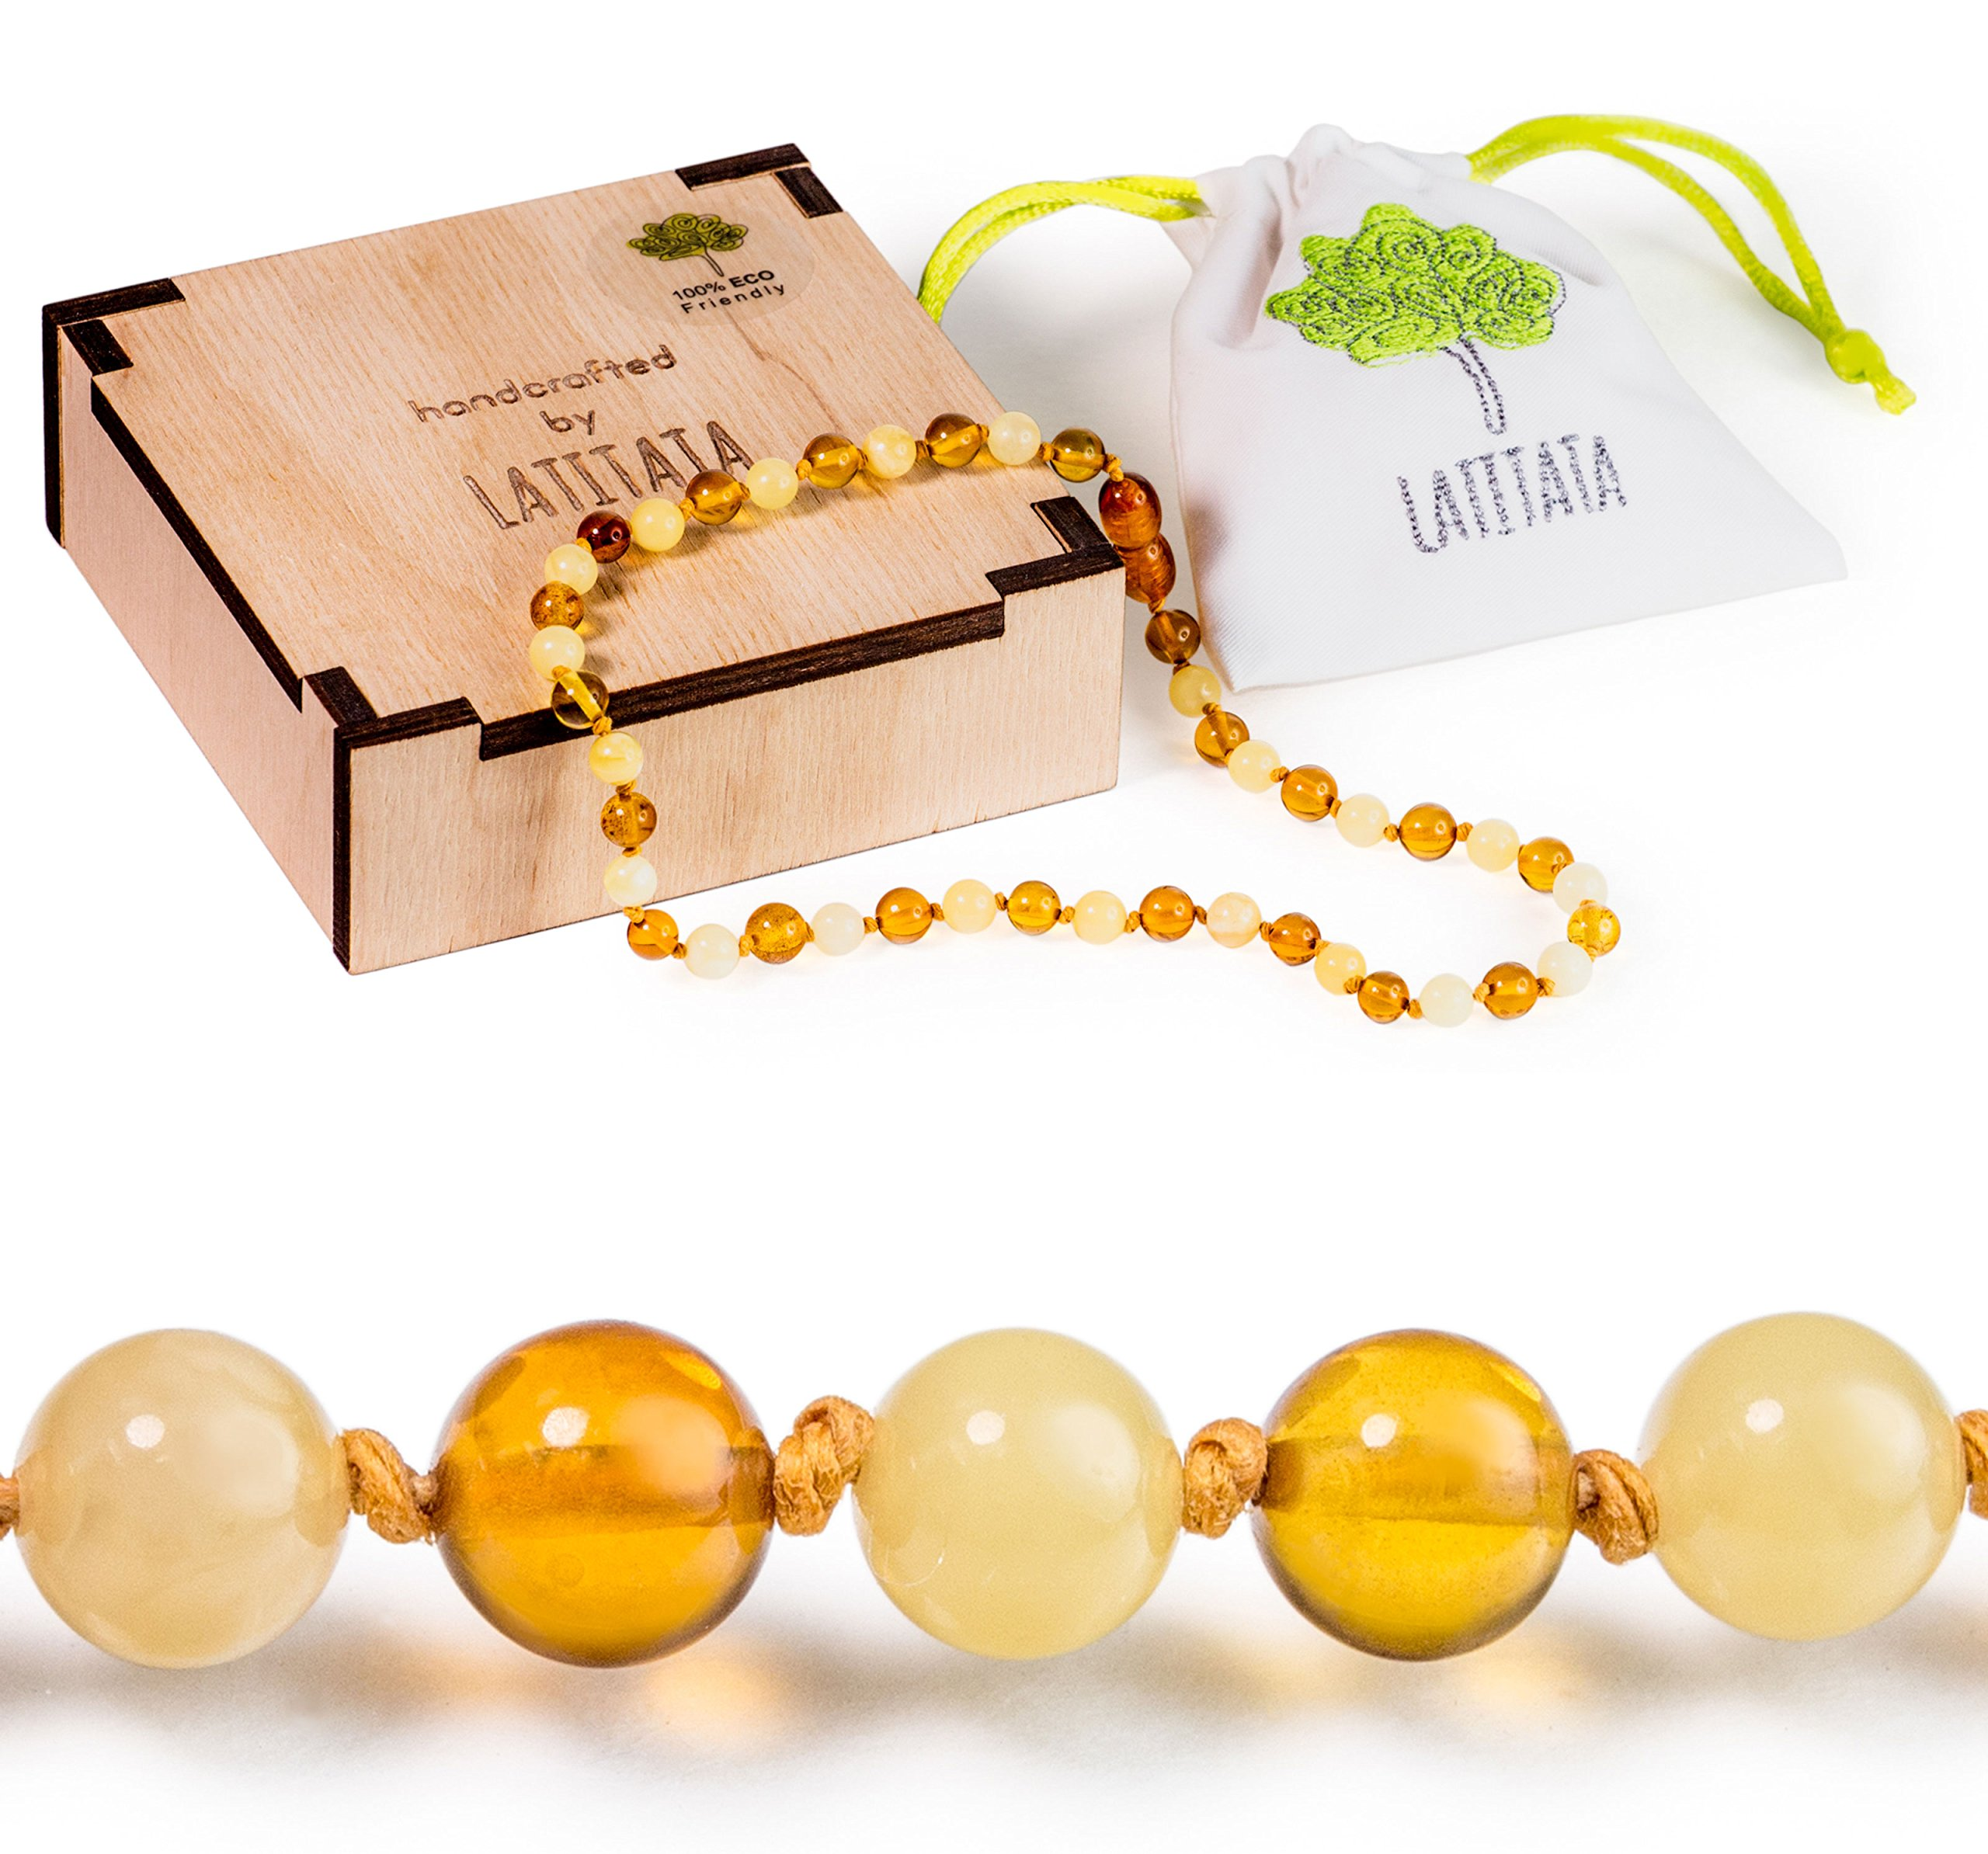 Amber Teething Necklace for Baby - Organic Baltic Amber Teething Necklace Made of Premium Raw Rounded Amber Beads - Teething Pain Relief - Best Natural Teething Necklace for Girls and Boys (Multi)